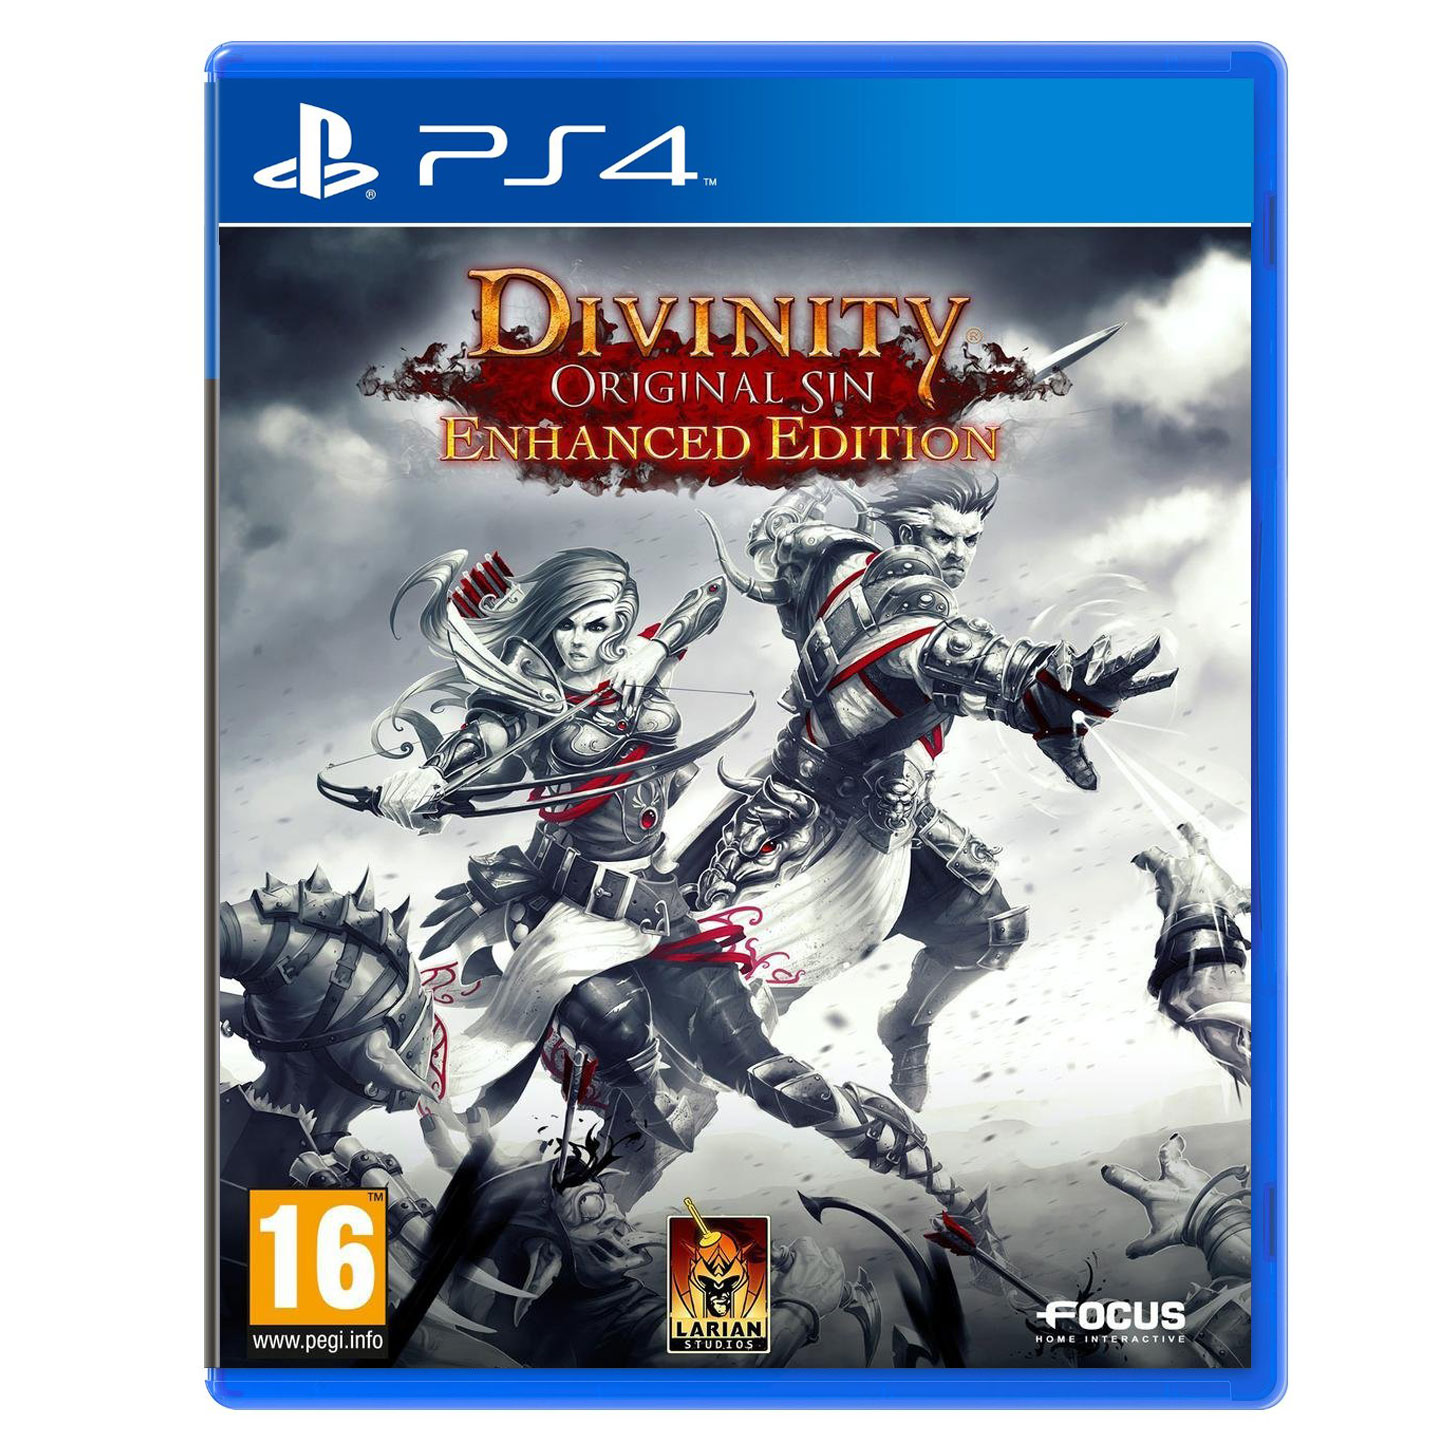 divinity original sin enhanced edition ps4 jeux. Black Bedroom Furniture Sets. Home Design Ideas